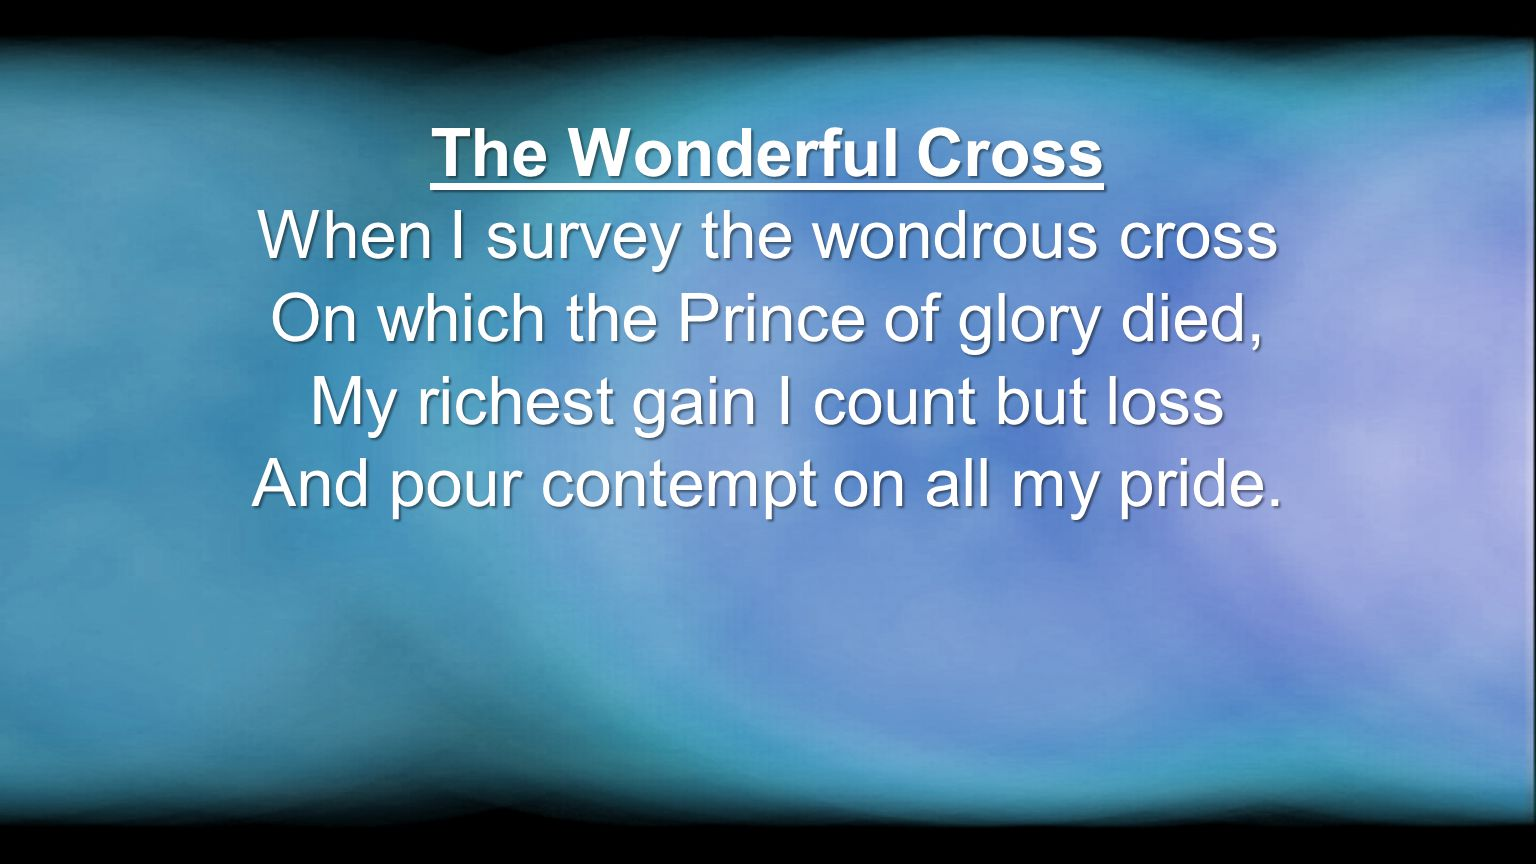 When I survey the wondrous cross On which the Prince of glory died,